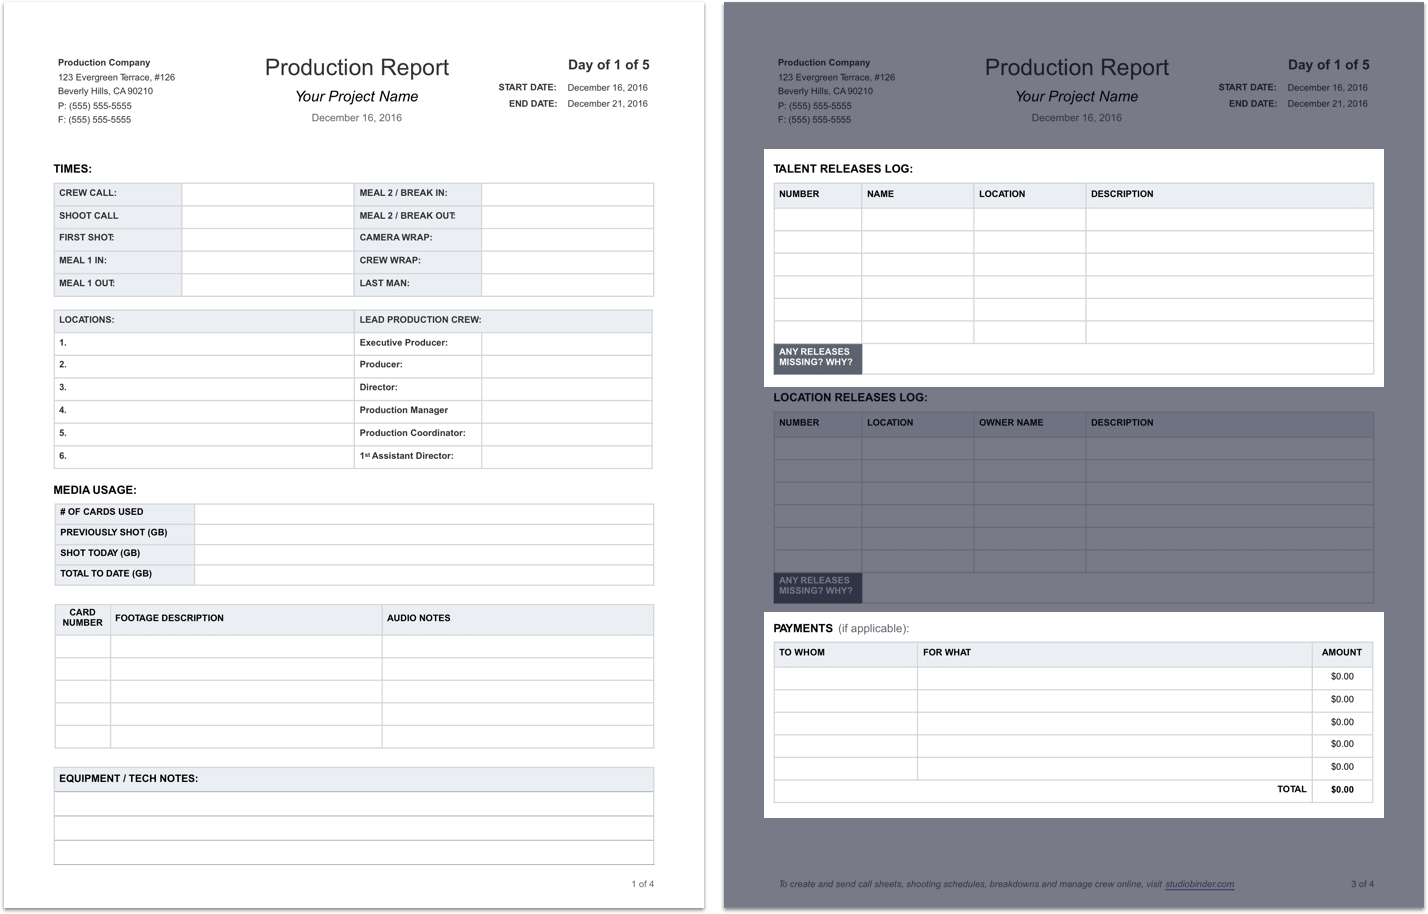 Daily Production Report Template   Tear Sheet   StudioBinder  Monthly Report Format